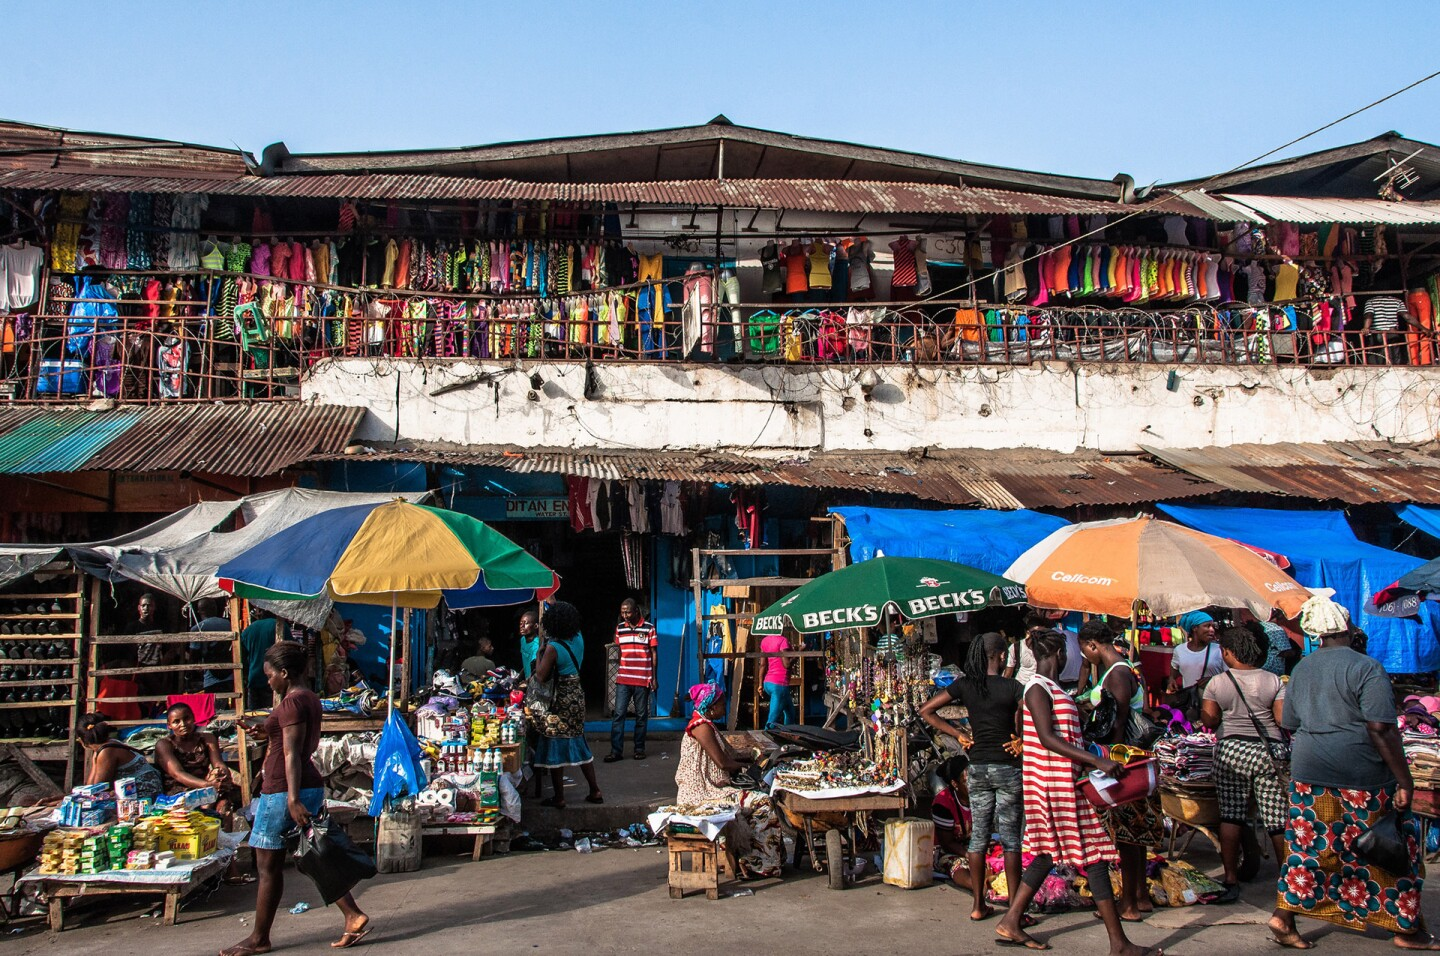 A series of stores in the Waterside Market section of Monrovia, Liberia.